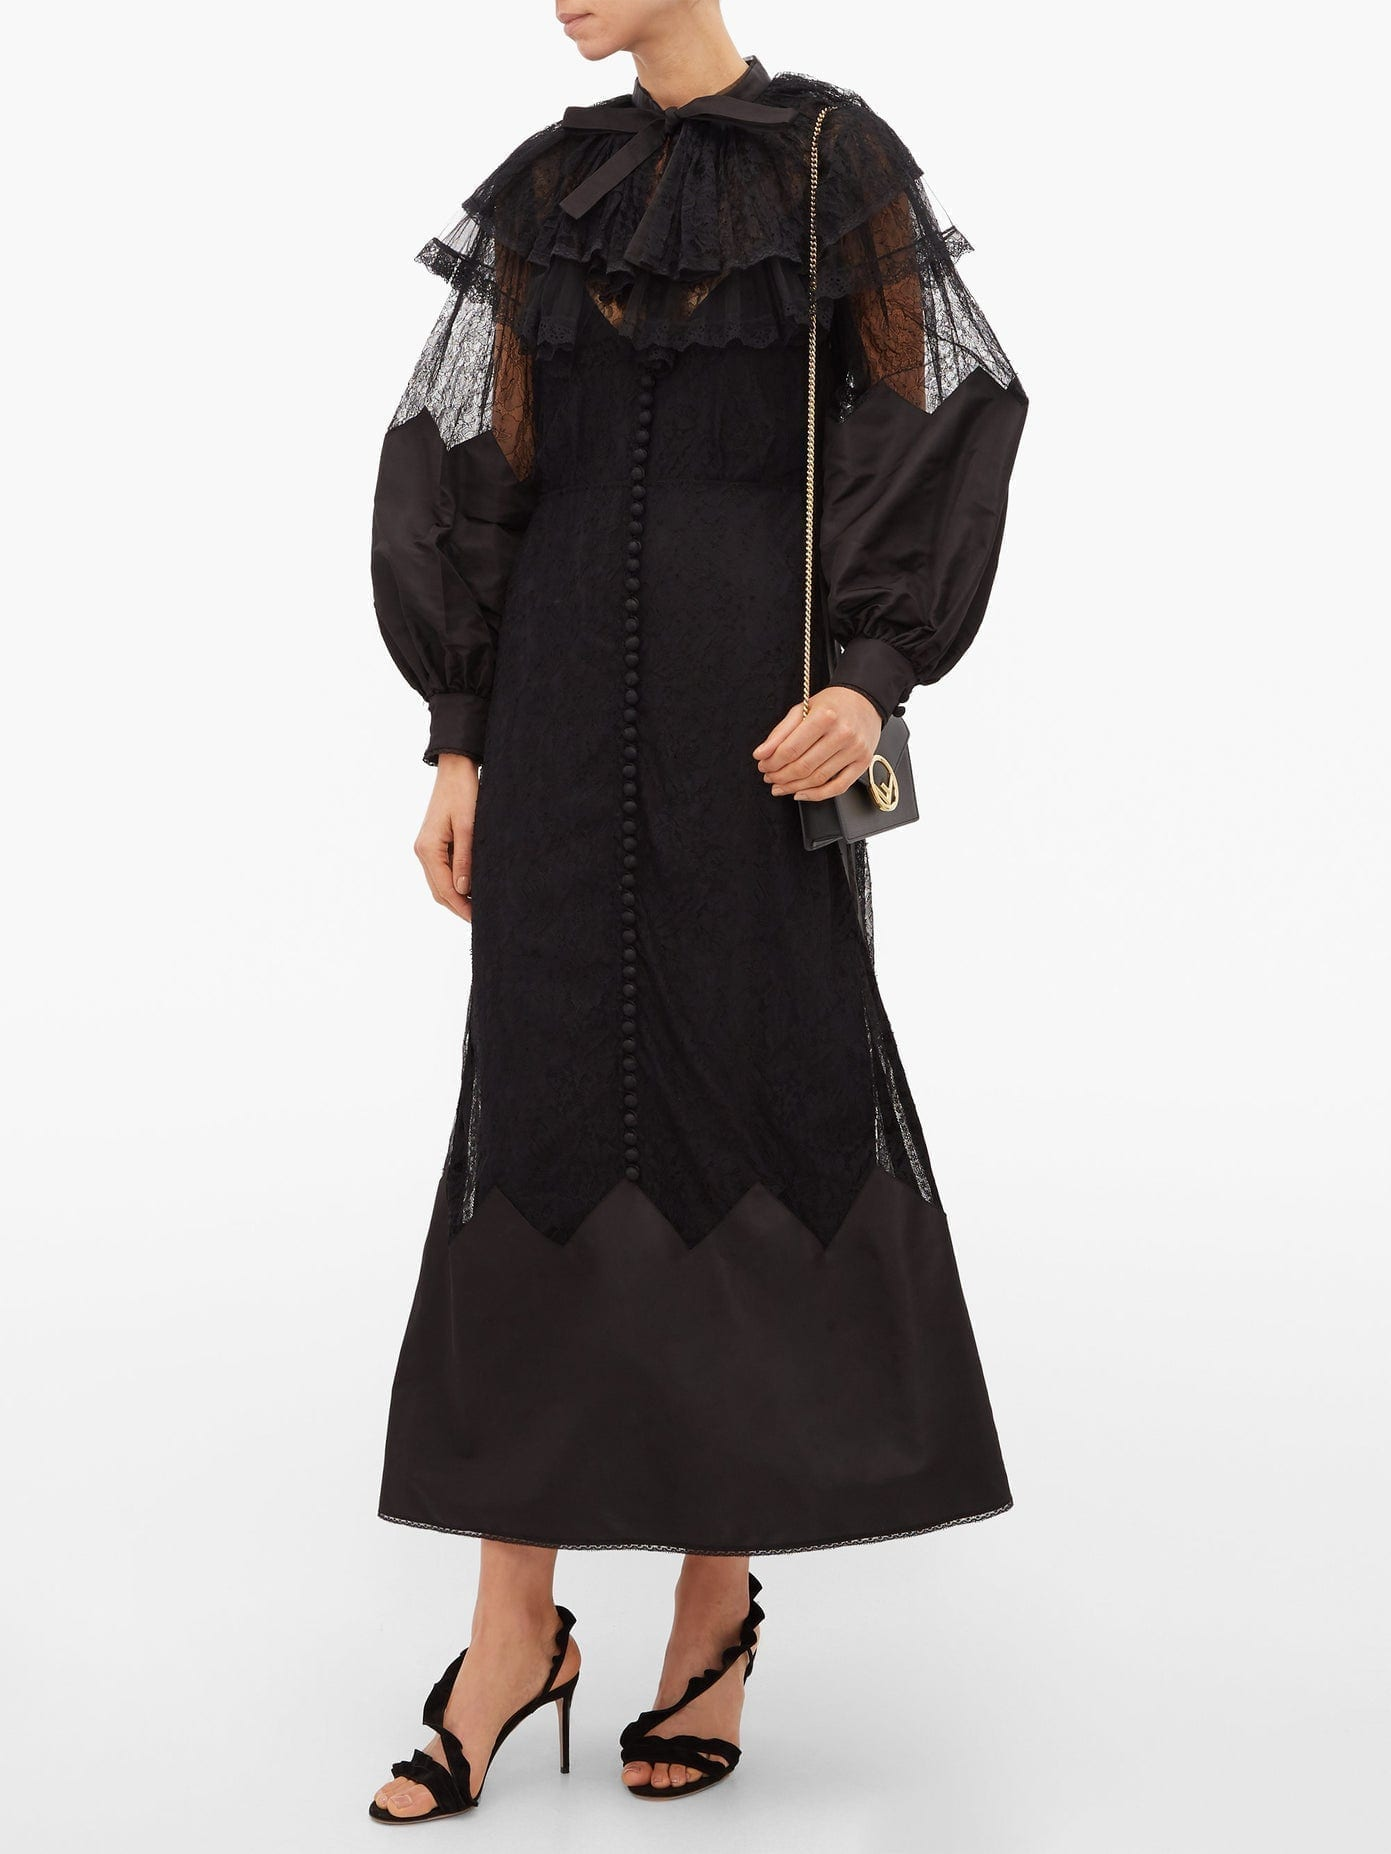 FENDI Ruffled Lace And Taffeta Midi Dress